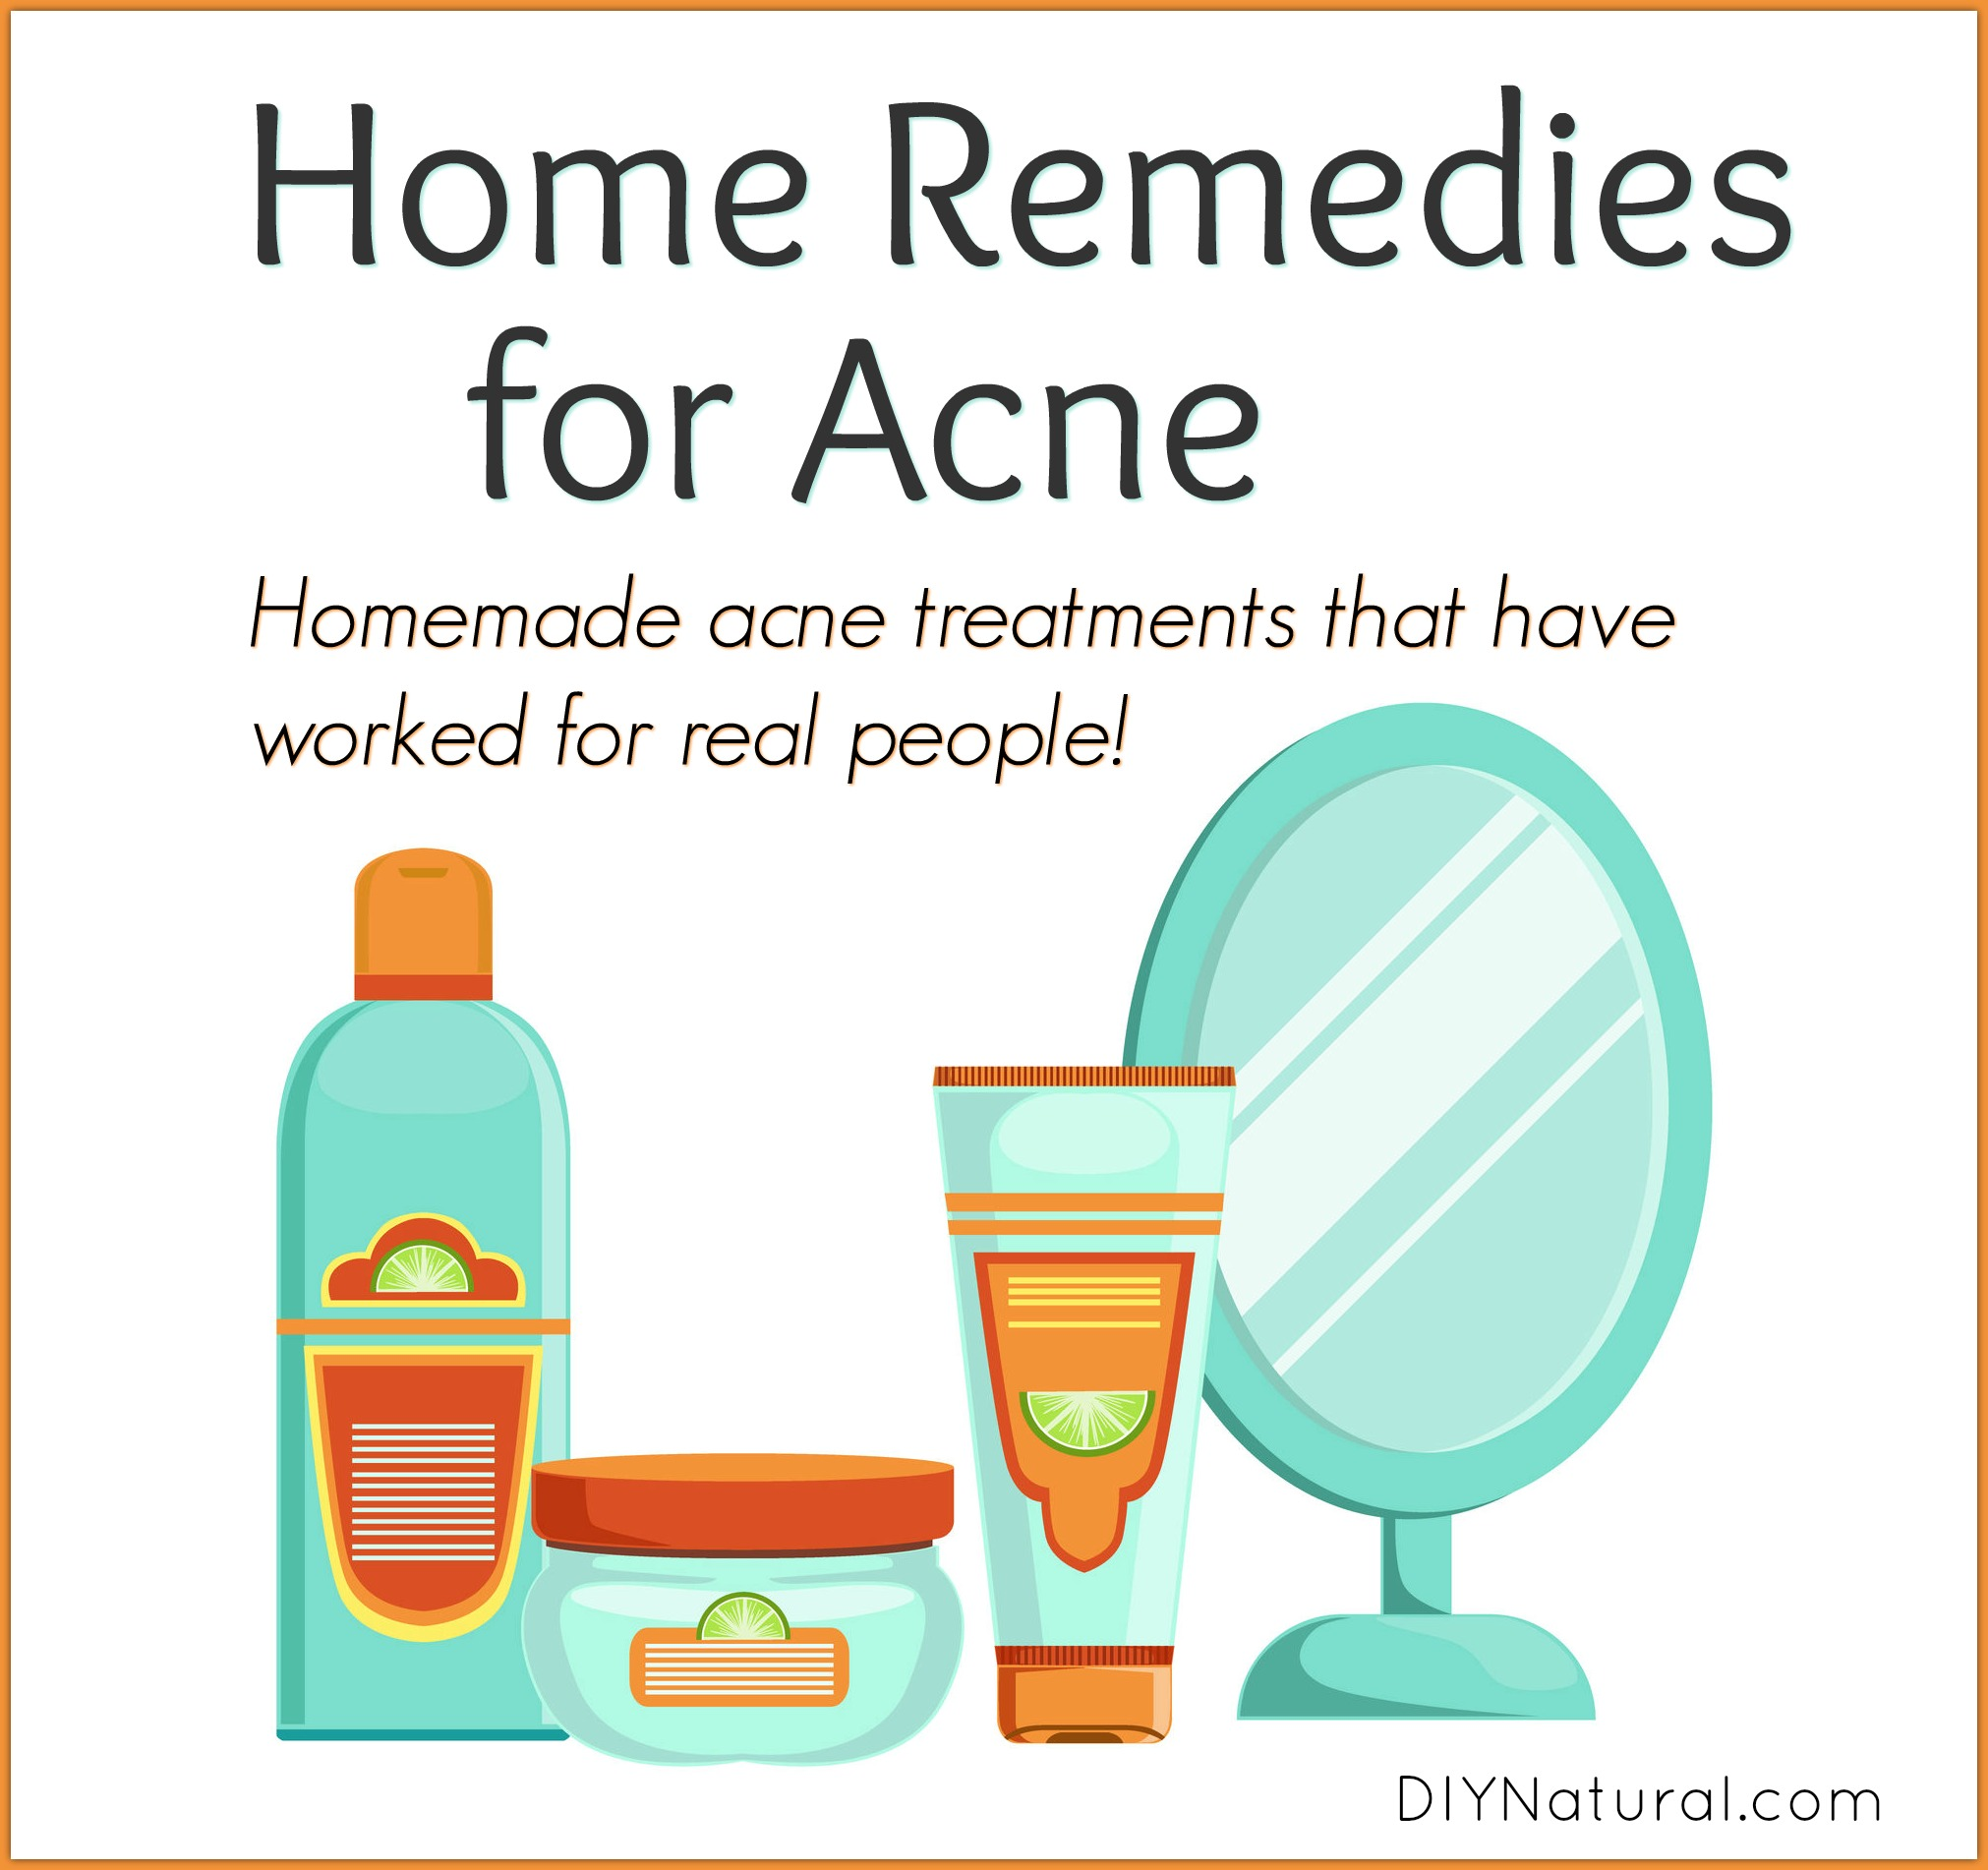 10 Effective At-Home Acne Treatments ActiveBeat